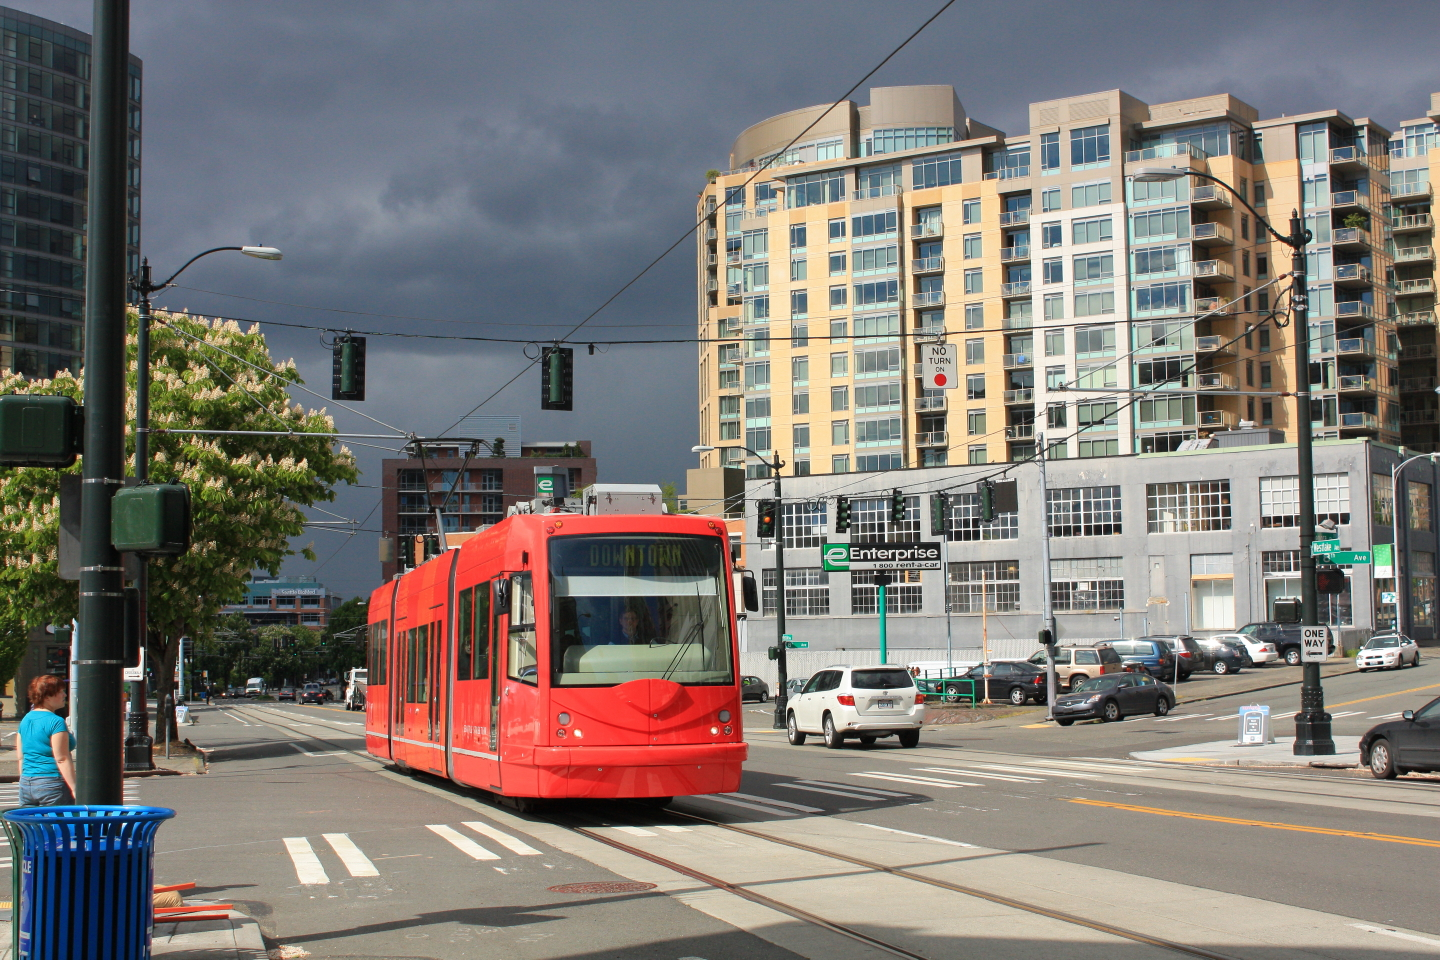 South Lake Union Trolley Things to do in Seattle